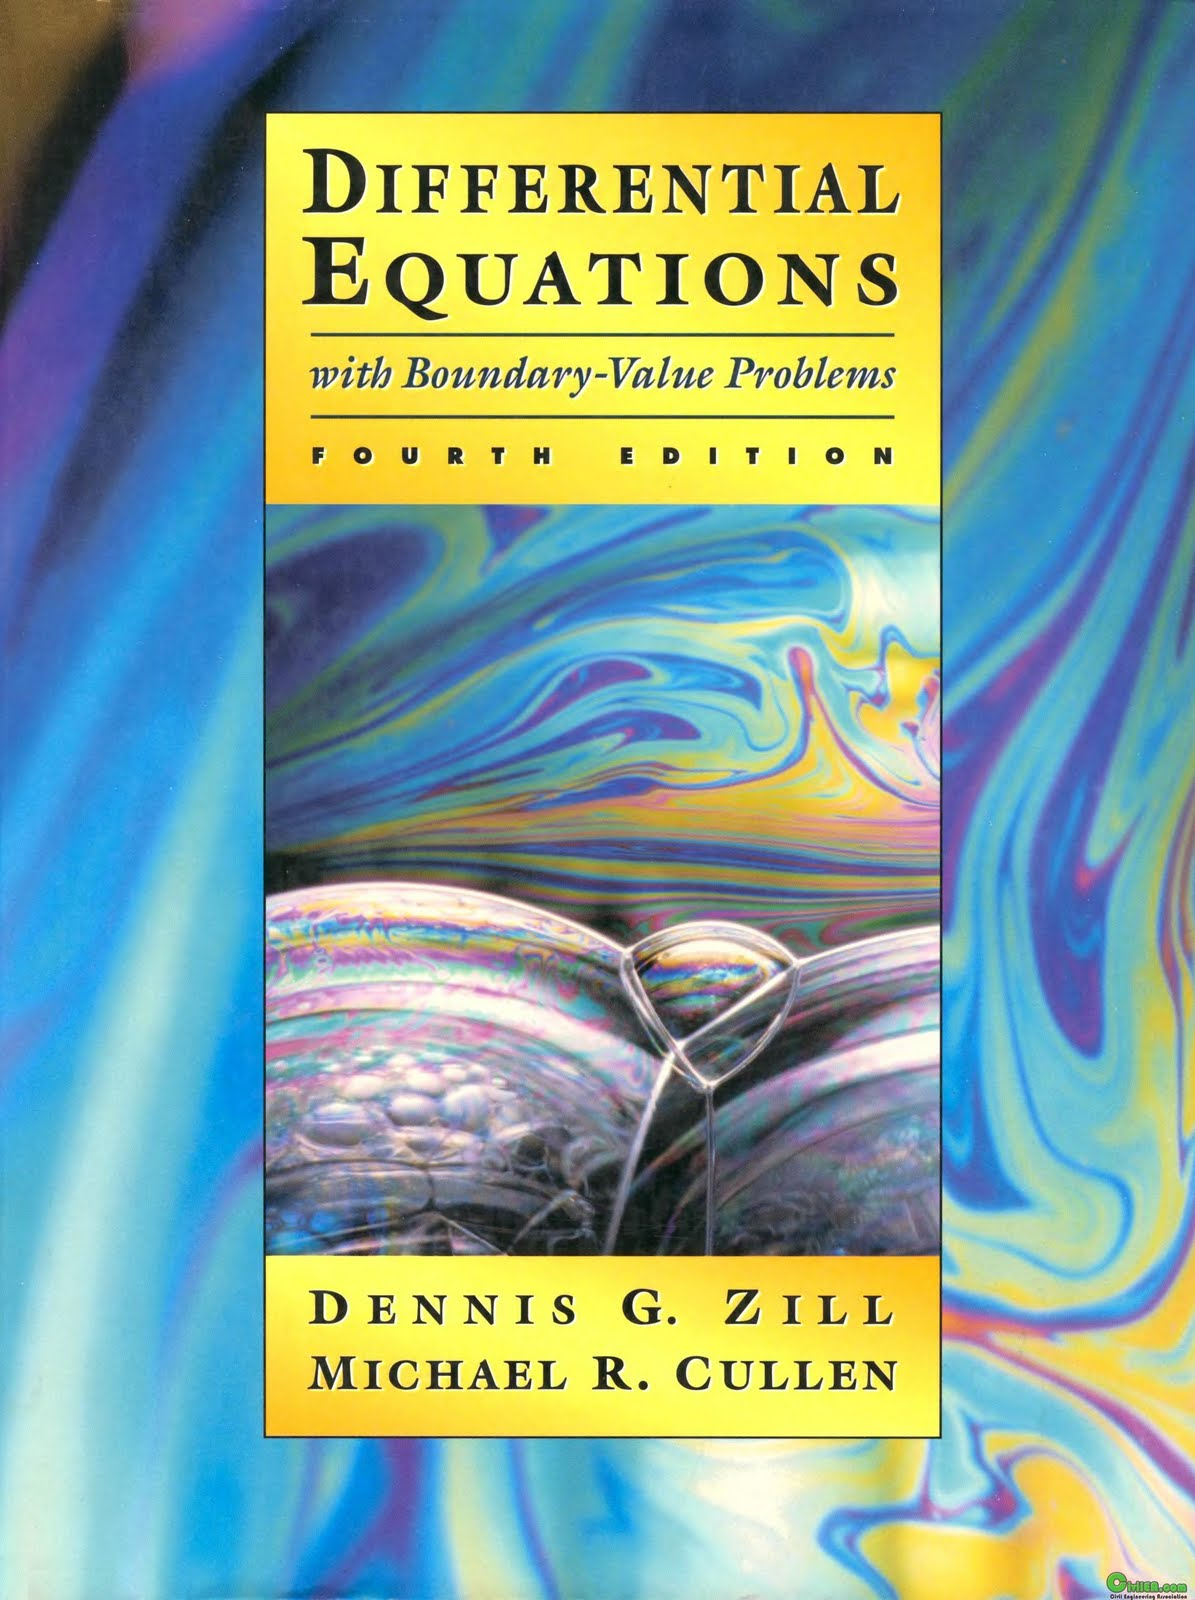 Differential Equations By Dennis G. Zill 3rd Edition Solution Manual